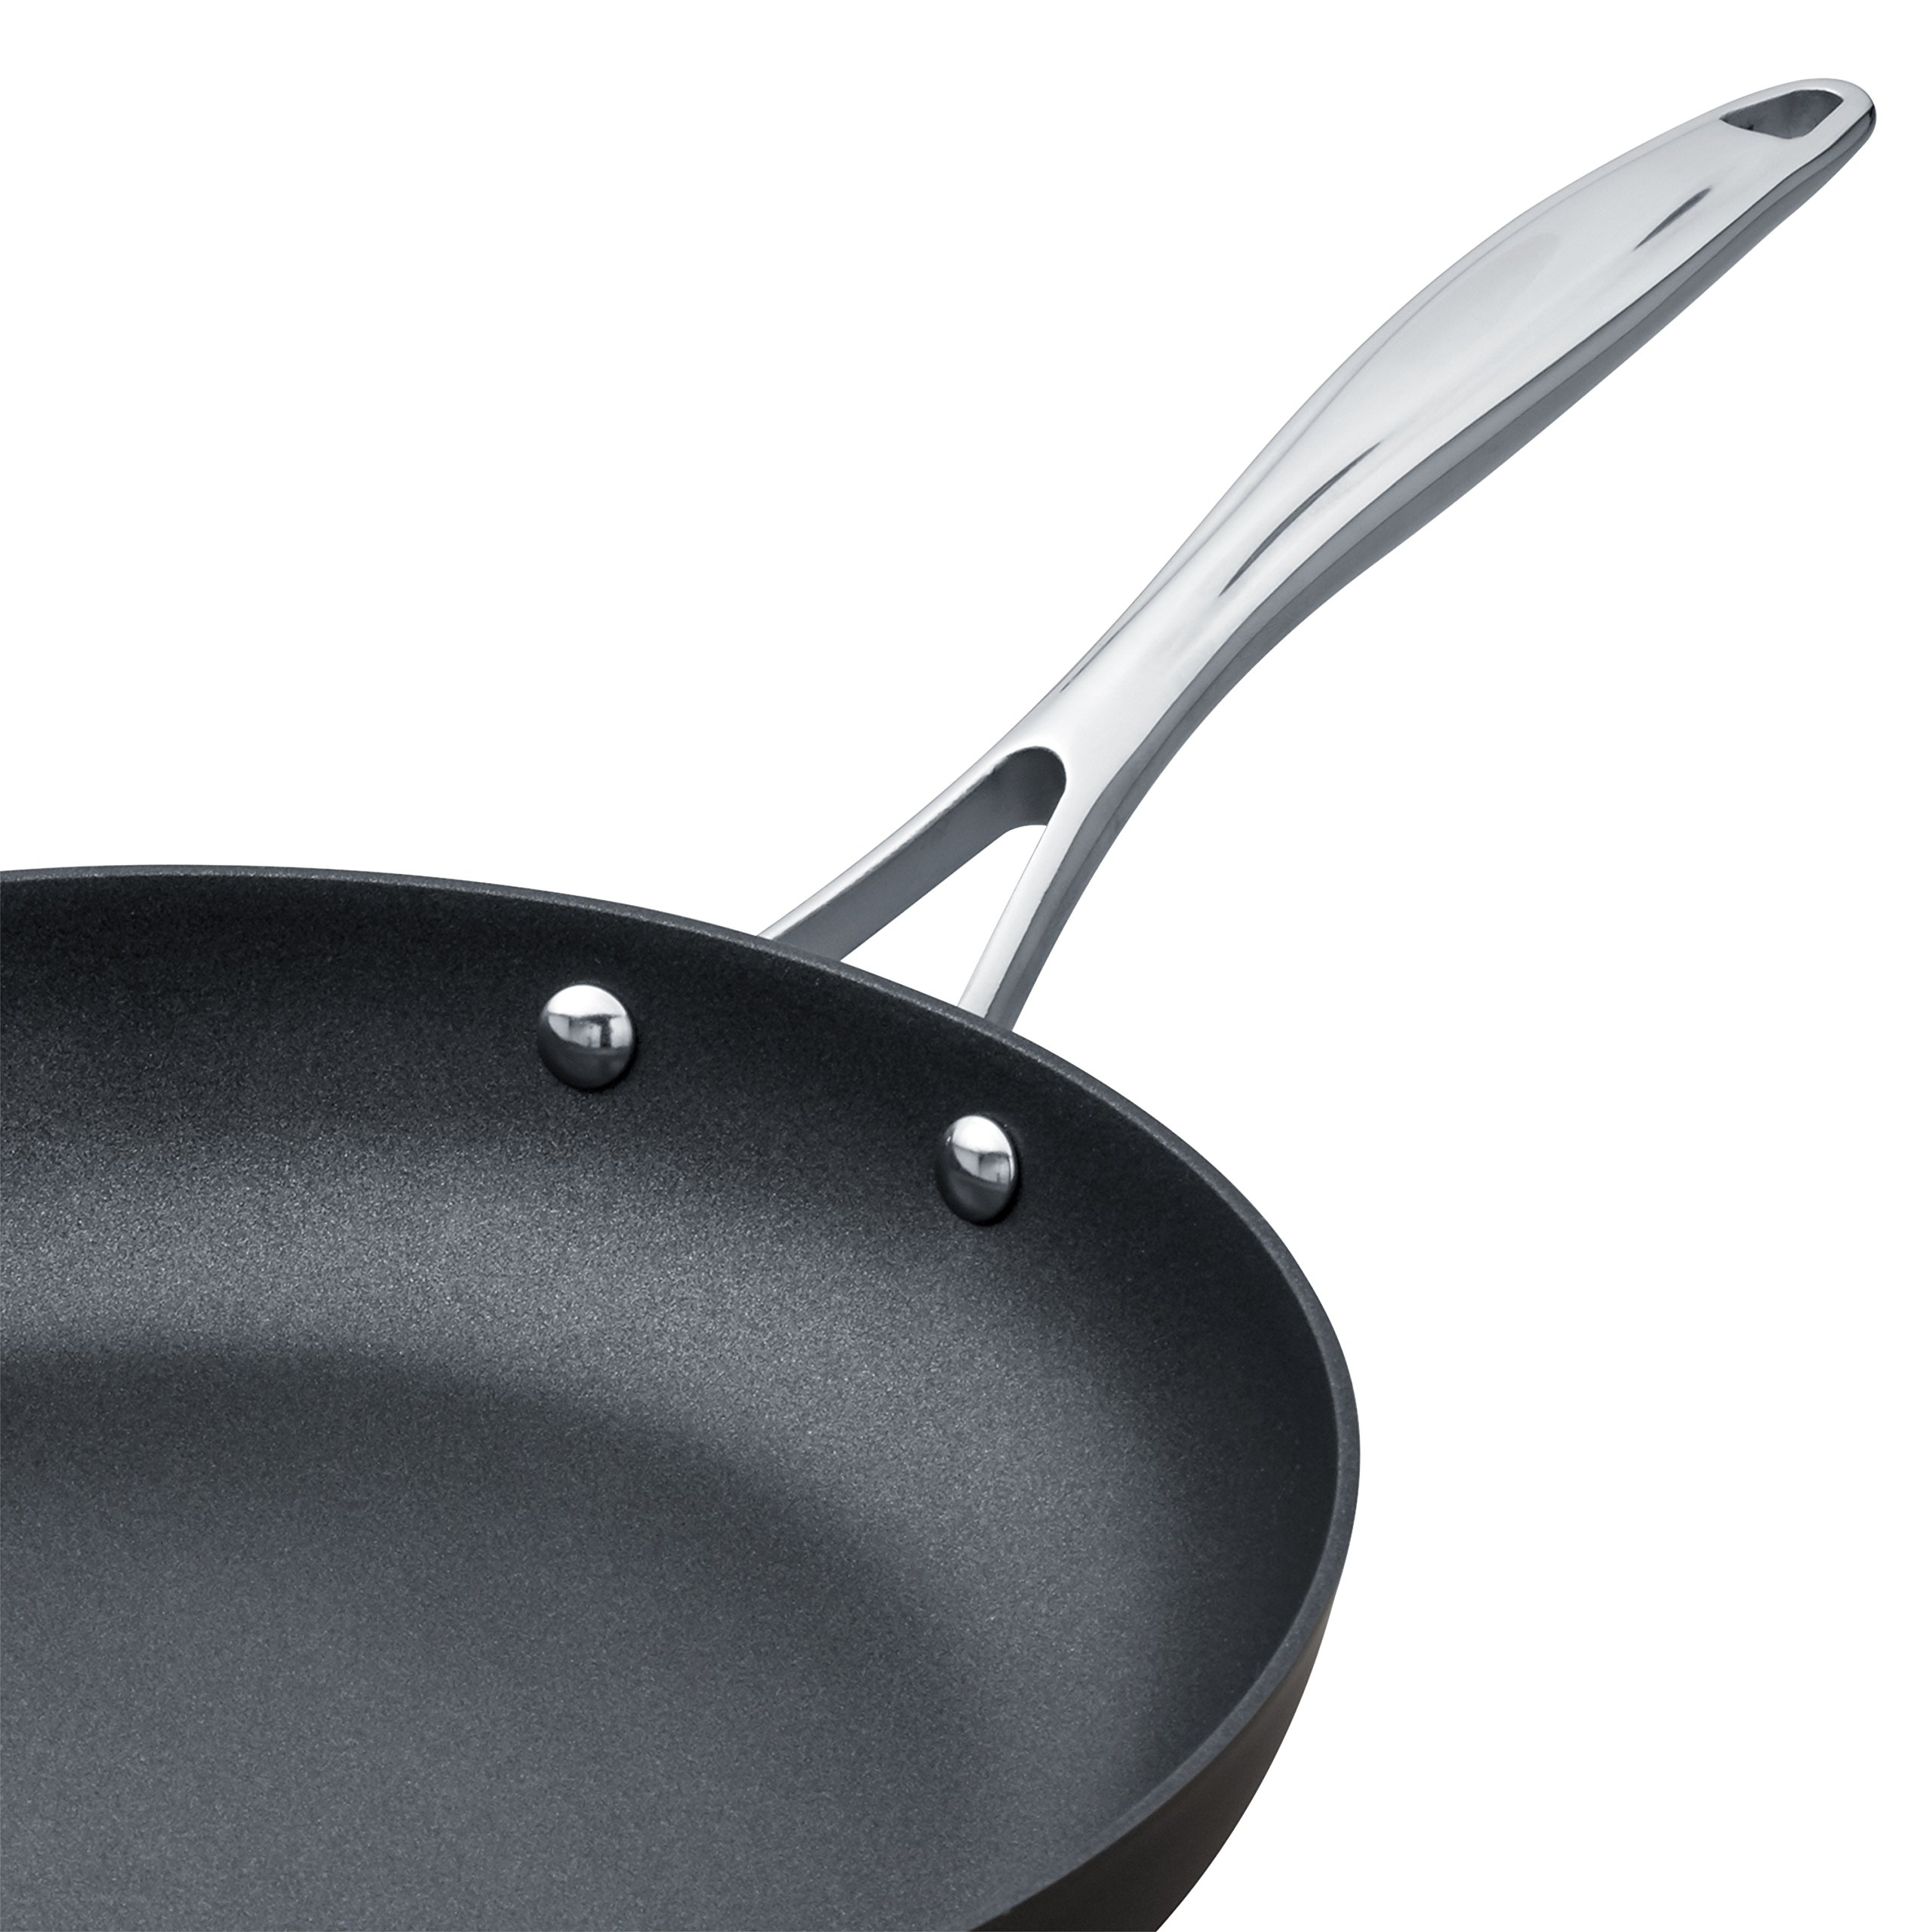 Stone & Beam Kitchen Cookware Set, 17-Piece, Pots and Pans, Hard-Anodized Non-Stick Aluminum by Stone & Beam (Image #5)